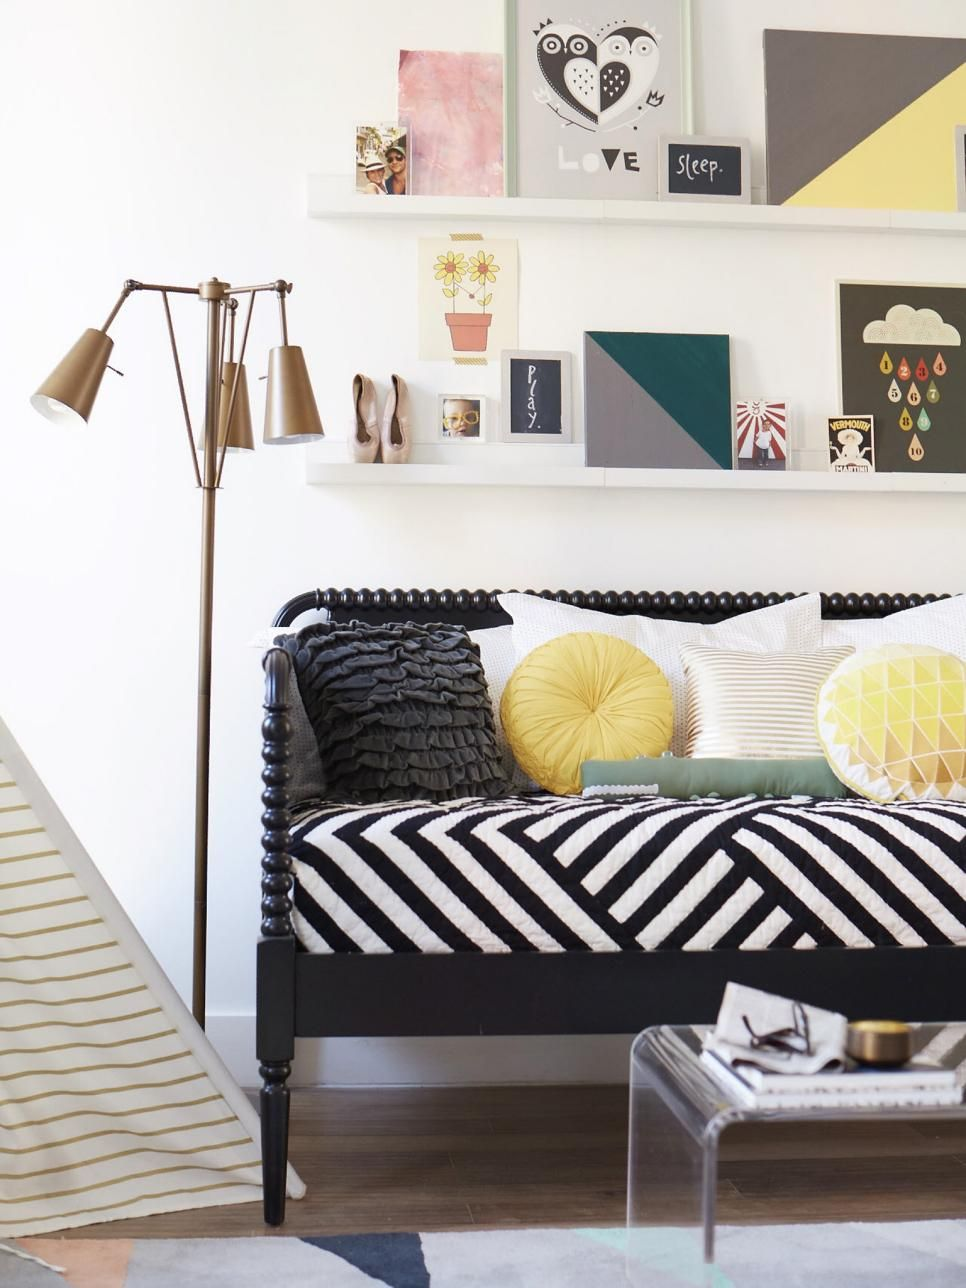 Small Space Decorating Don\'ts   Pinterest   Small spaces, Hgtv and ...